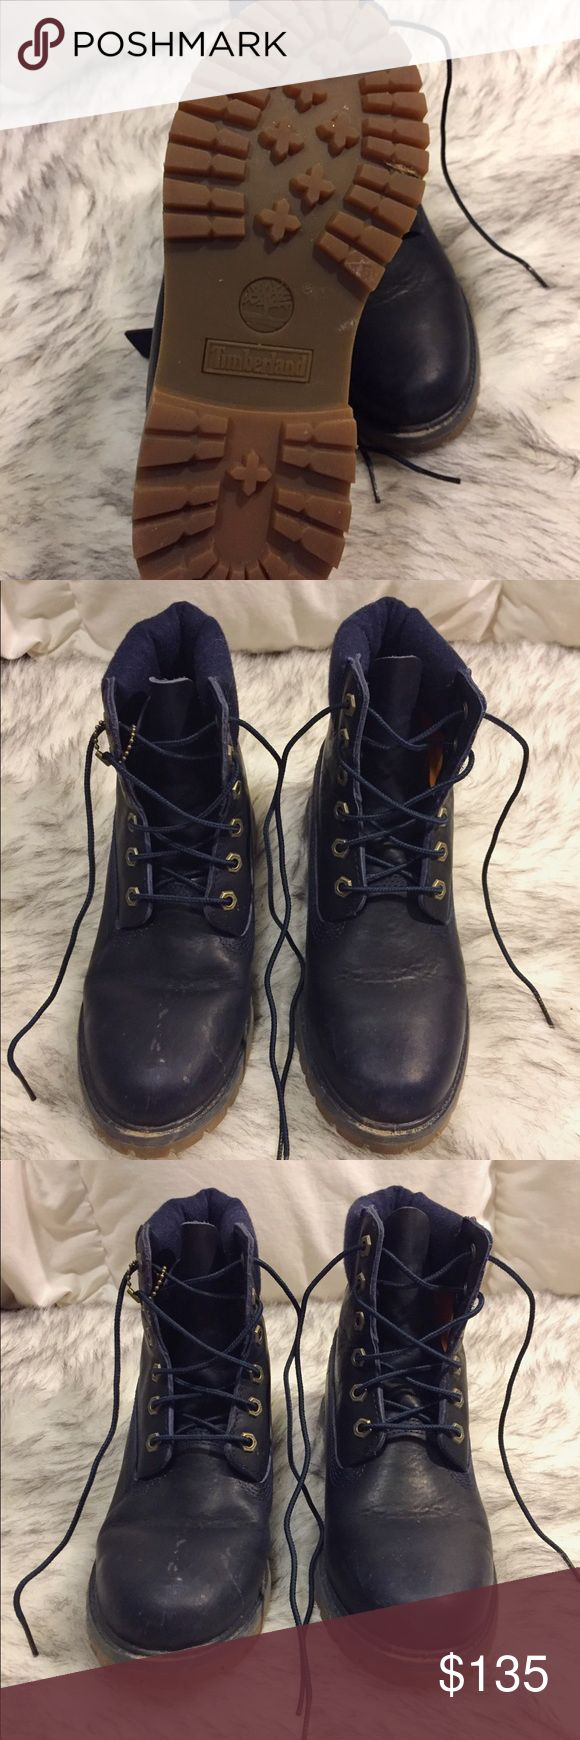 Timberland 6inch leather water proof boots Worn less than five times, sold out, retailed for $170, water proof and super warm! These are such sick boots! 7.5 women's. The white spots on the boots can be wiped away, I just didn't clean it lol Timberland Shoes